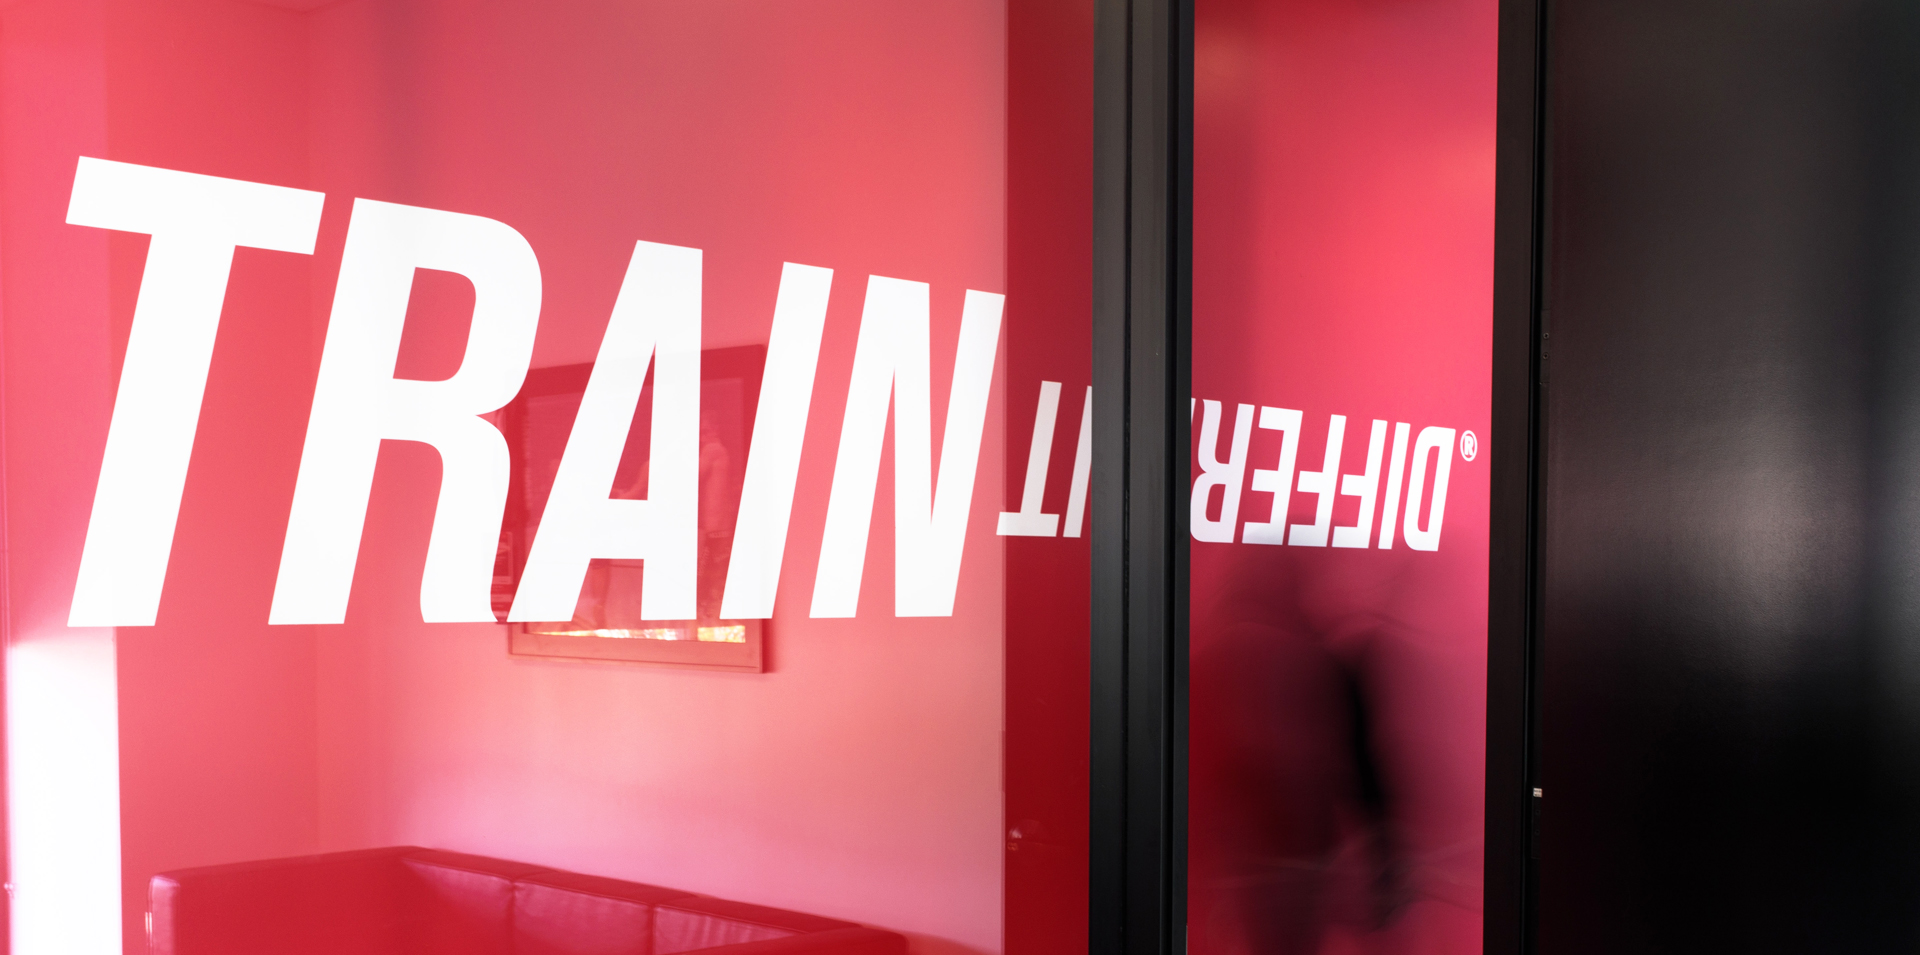 Train Different on red wall image